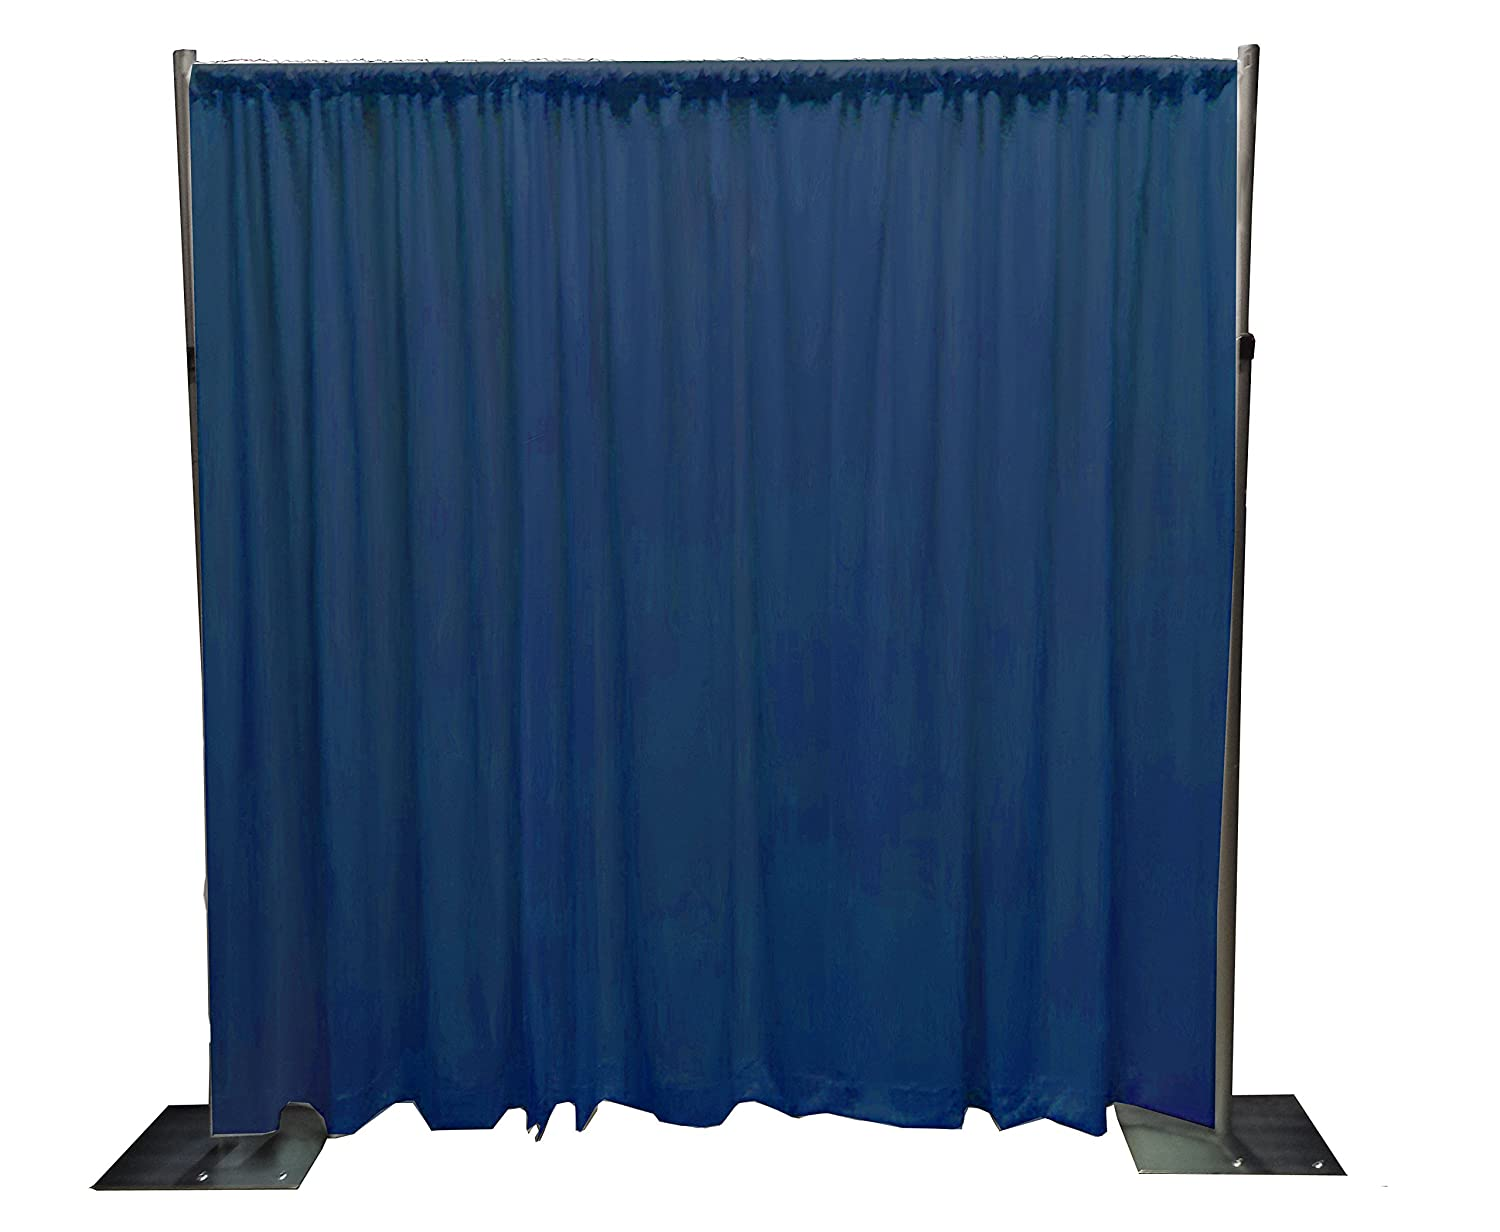 Amazon.com : Adjustable Height Backdrop Kit- 7 to 12ft High x 7 to ...